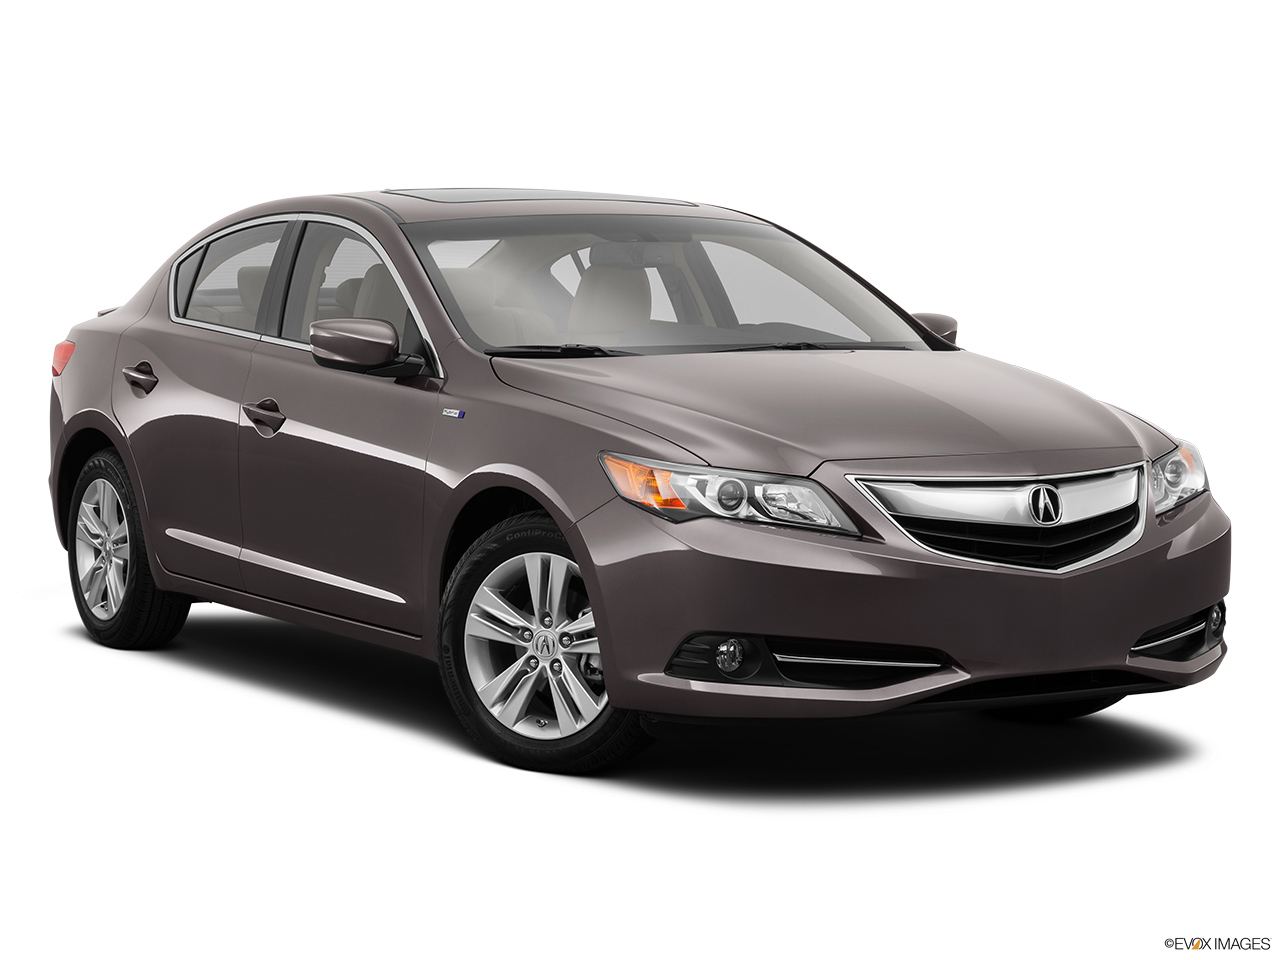 2014 Acura ILX Hybrid Base Front passenger 3/4 w/ wheels turned.